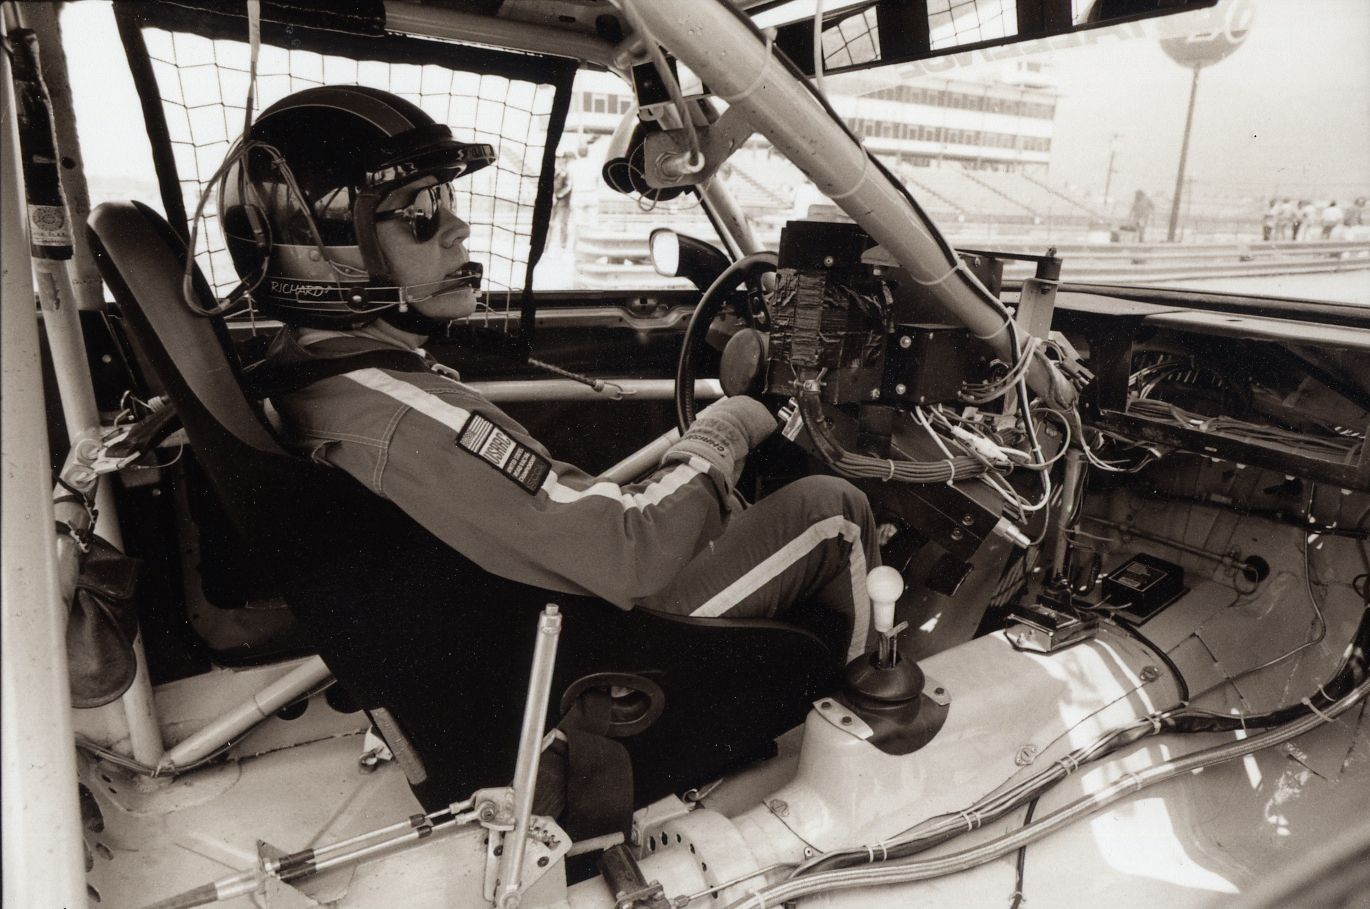 Richard's second office in '81 and '82. Volvo, Turbo, Racing